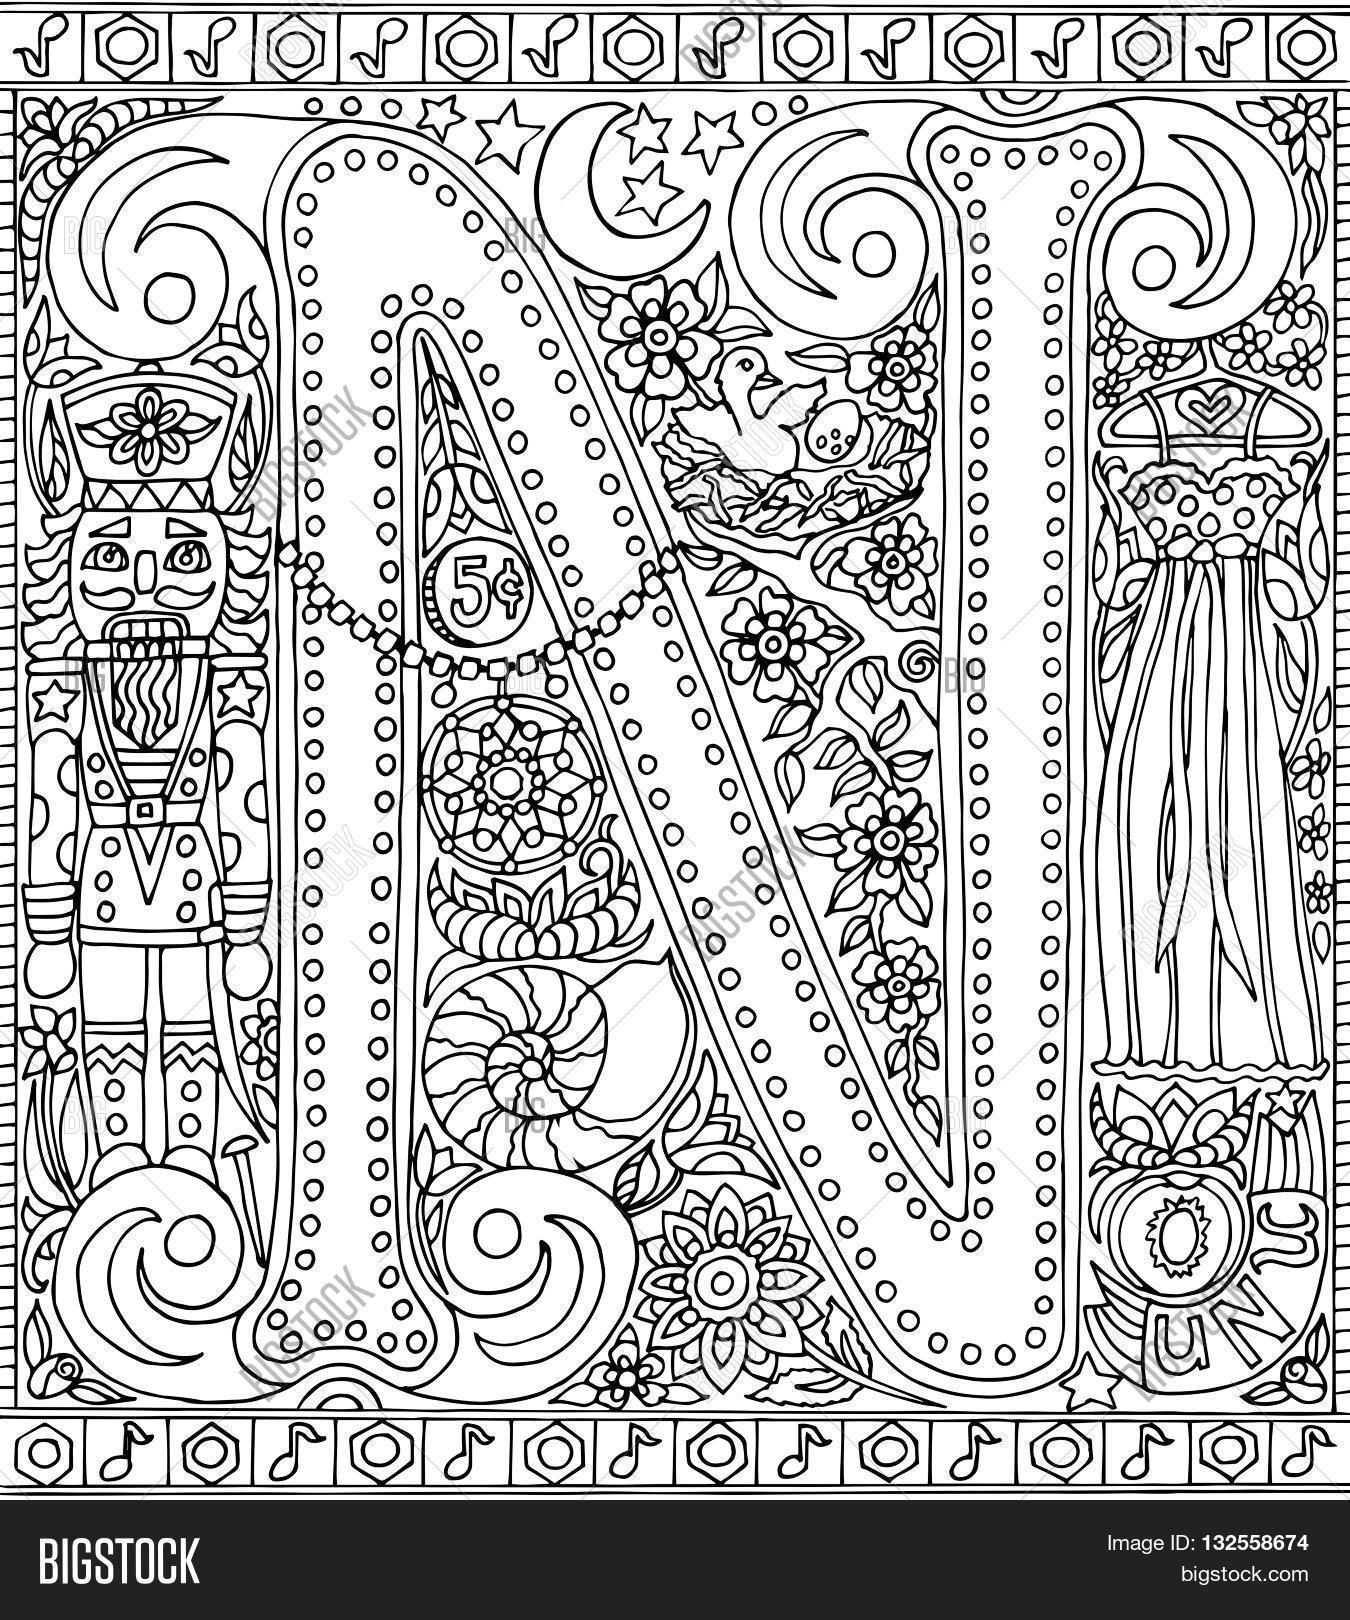 The coloring book poster - Adult Coloring Book Poster Alphabet Letter N Black And White Vector Illustration